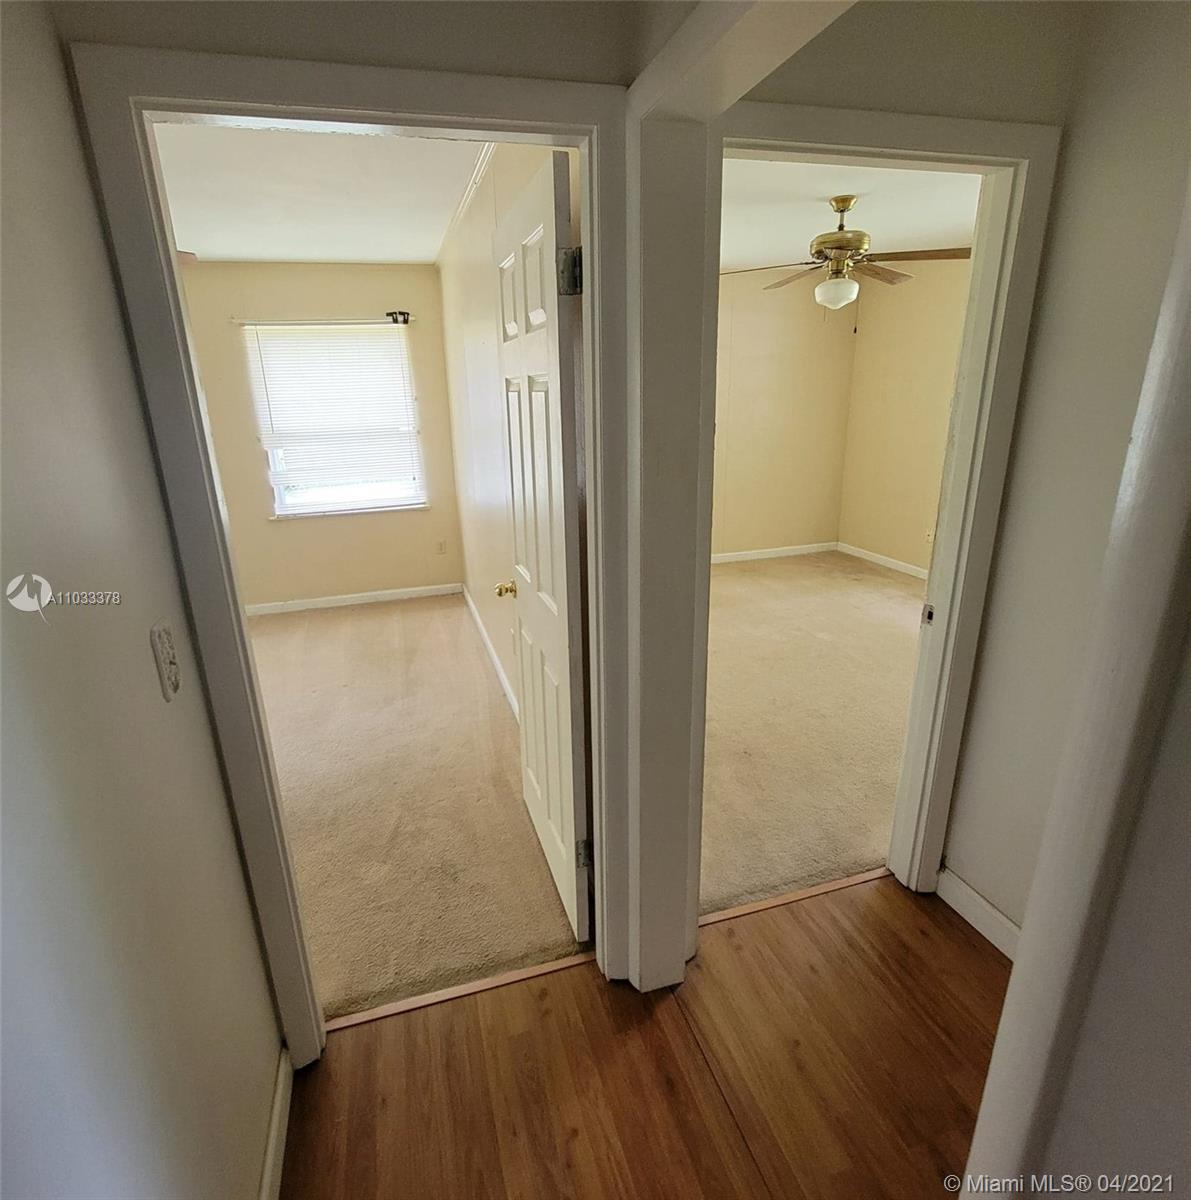 Entrance to bedrooms